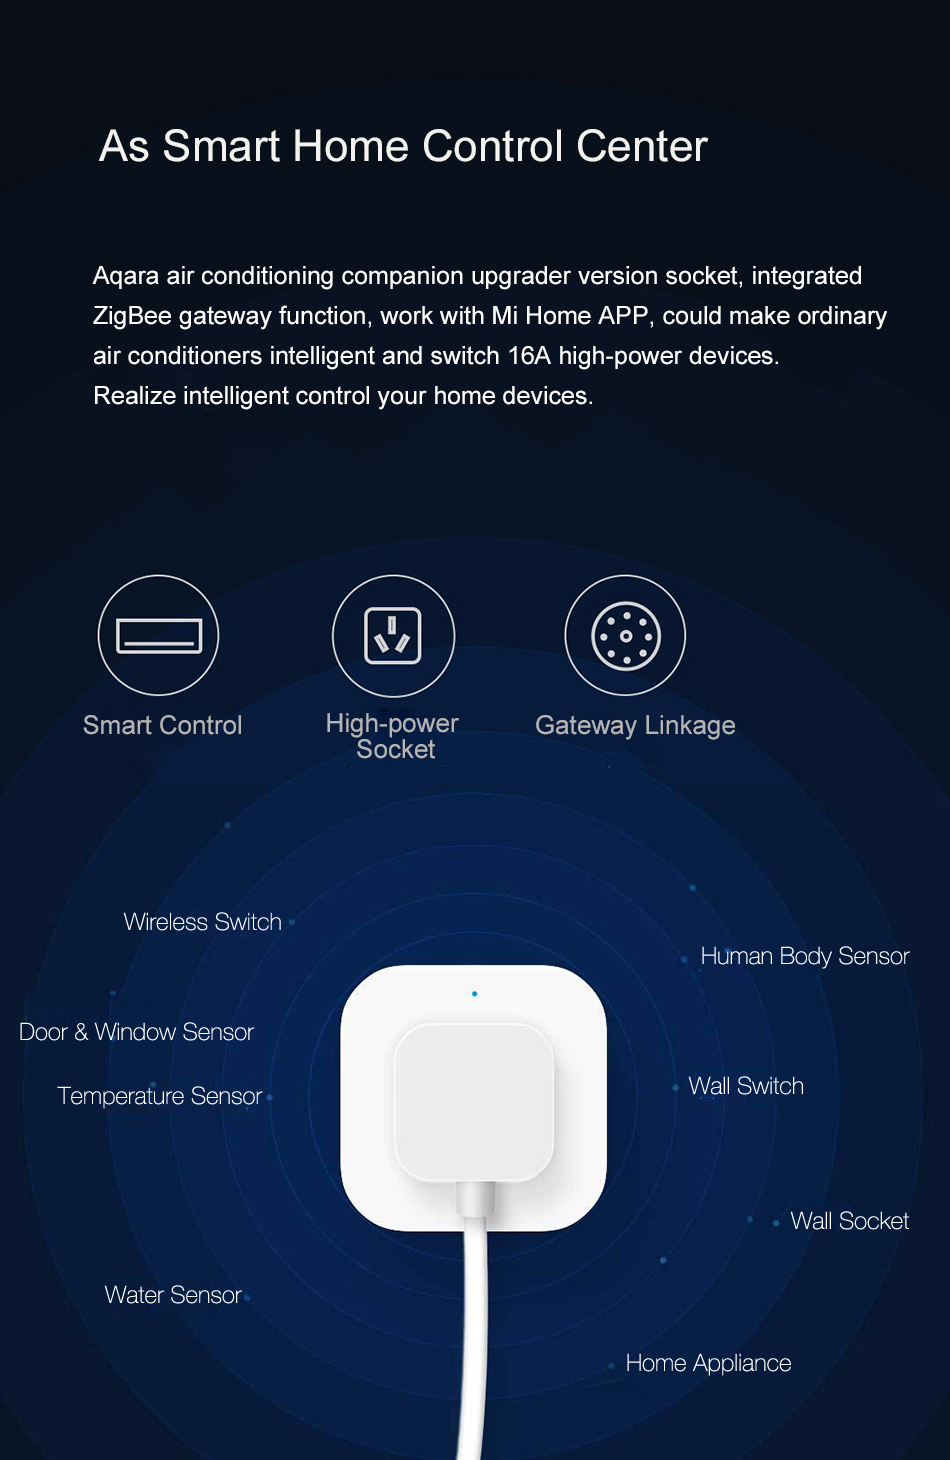 Aqara 16A Air Conditioner Companion Smart Socket with Gateway Linkage  Function High-power Switch Outlet From Xiaomi Eco-System